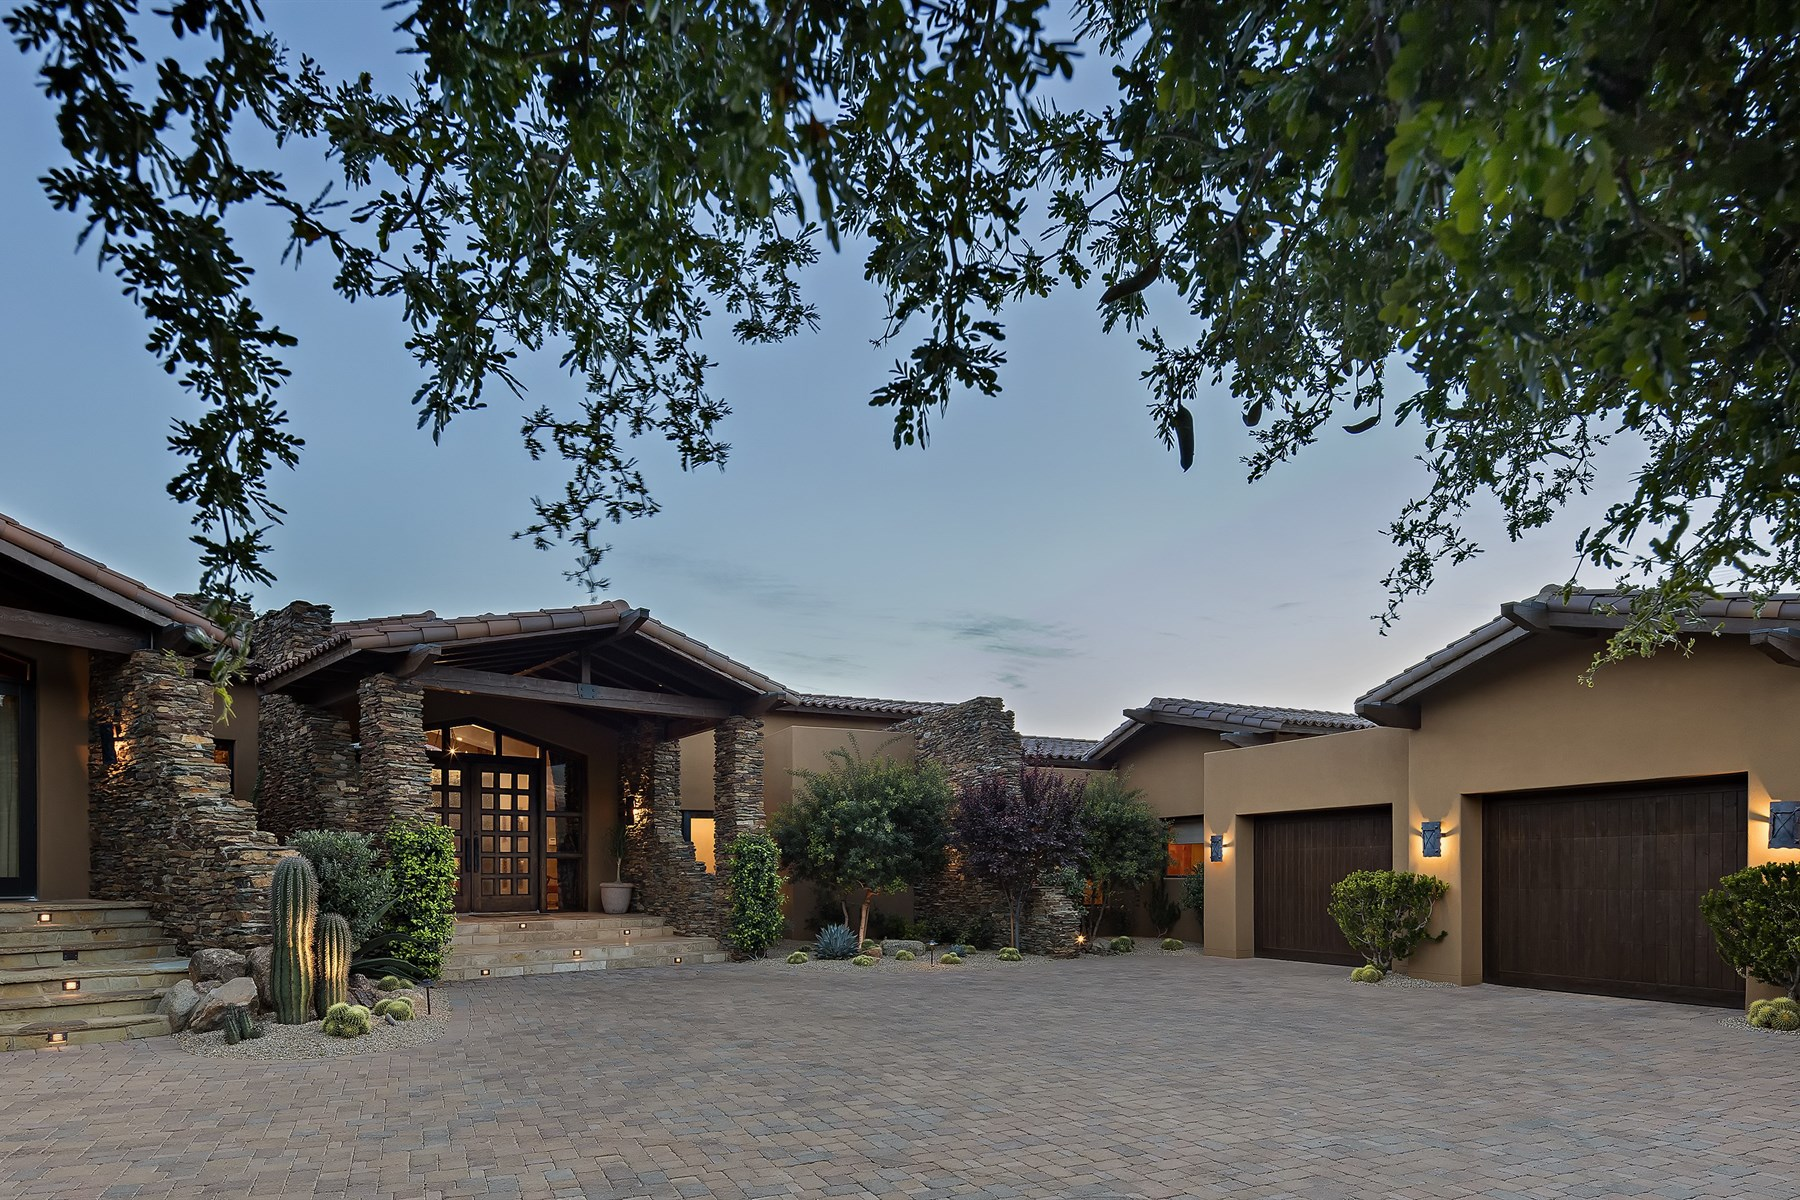 Einfamilienhaus für Verkauf beim Truly original home with the finest of finishes on a premier home site 9793 E Falling Star Dr Scottsdale, Arizona, 85262 Vereinigte Staaten